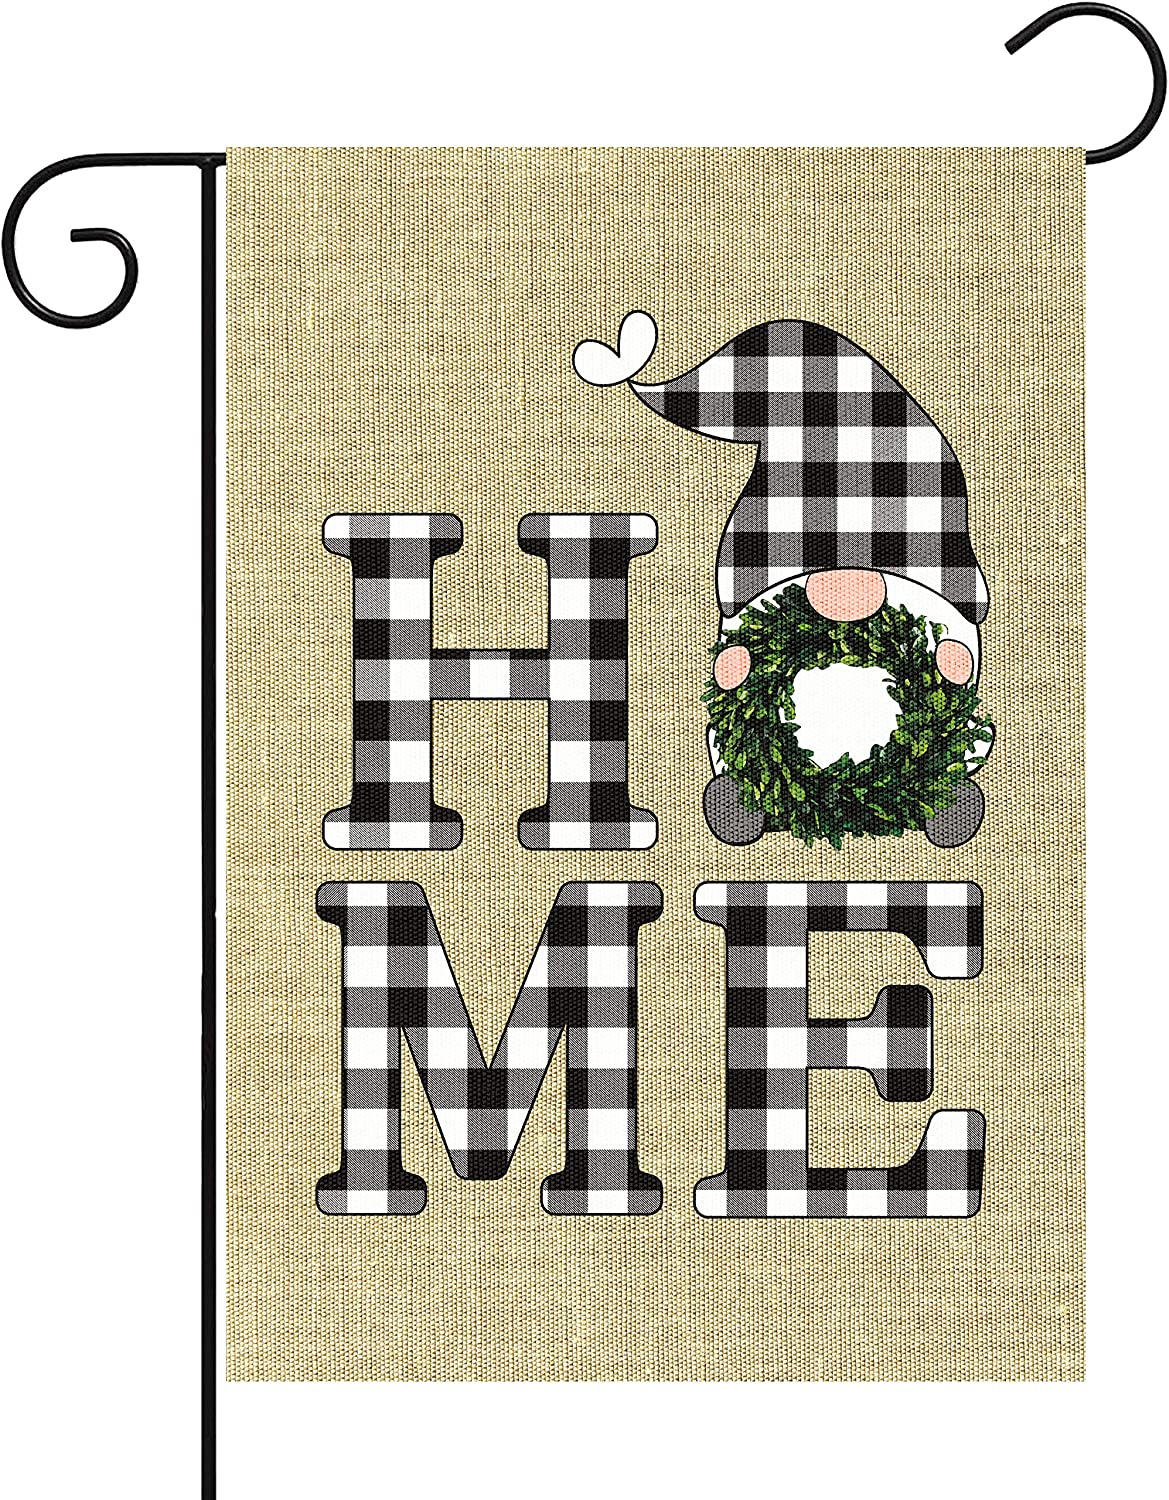 WATINC Home Gnome Garden Flag Sweet Home Burlap Yard Sign Vertical Double Sided Black White Buffalo Check Plaid Wreath Gnome Spring Summer Party Decorations Supplies for Indoor Outdoor 12.6 x 18.1 in